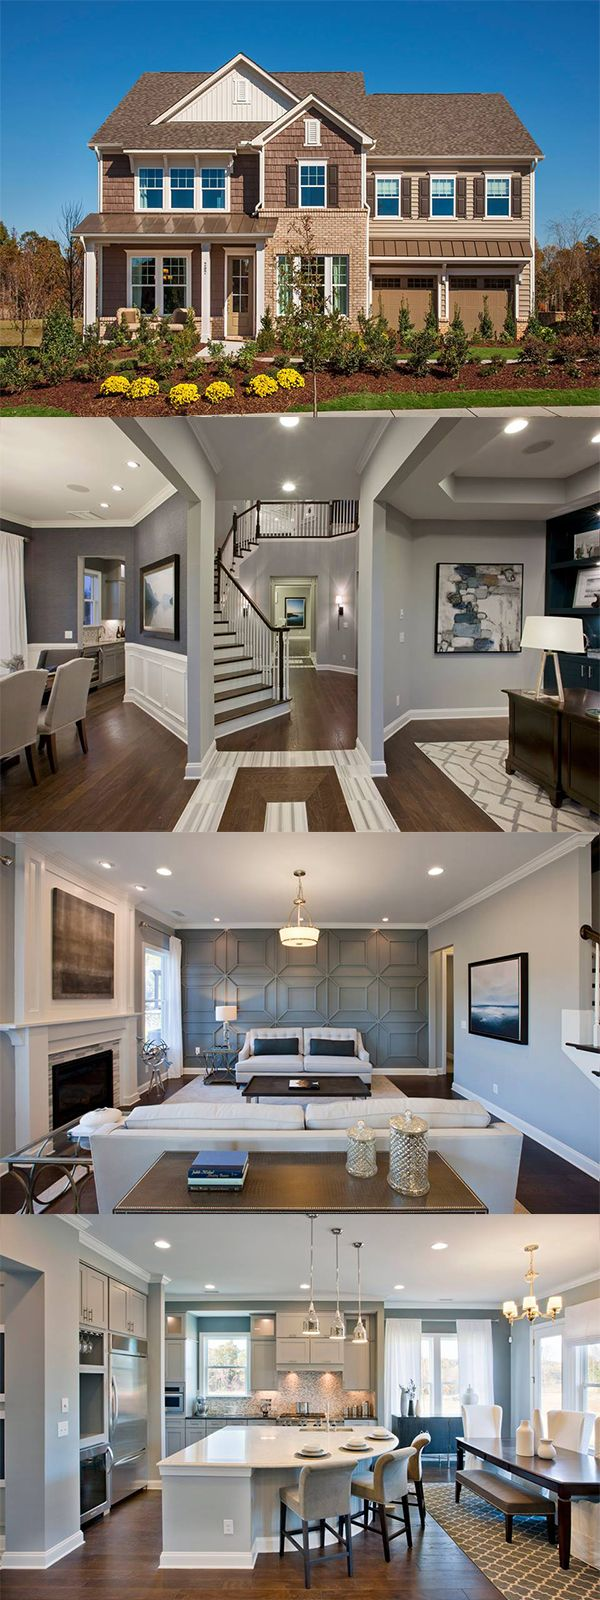 5 bedroom house interior stop by our newest community waterstone and tour  papyrus place